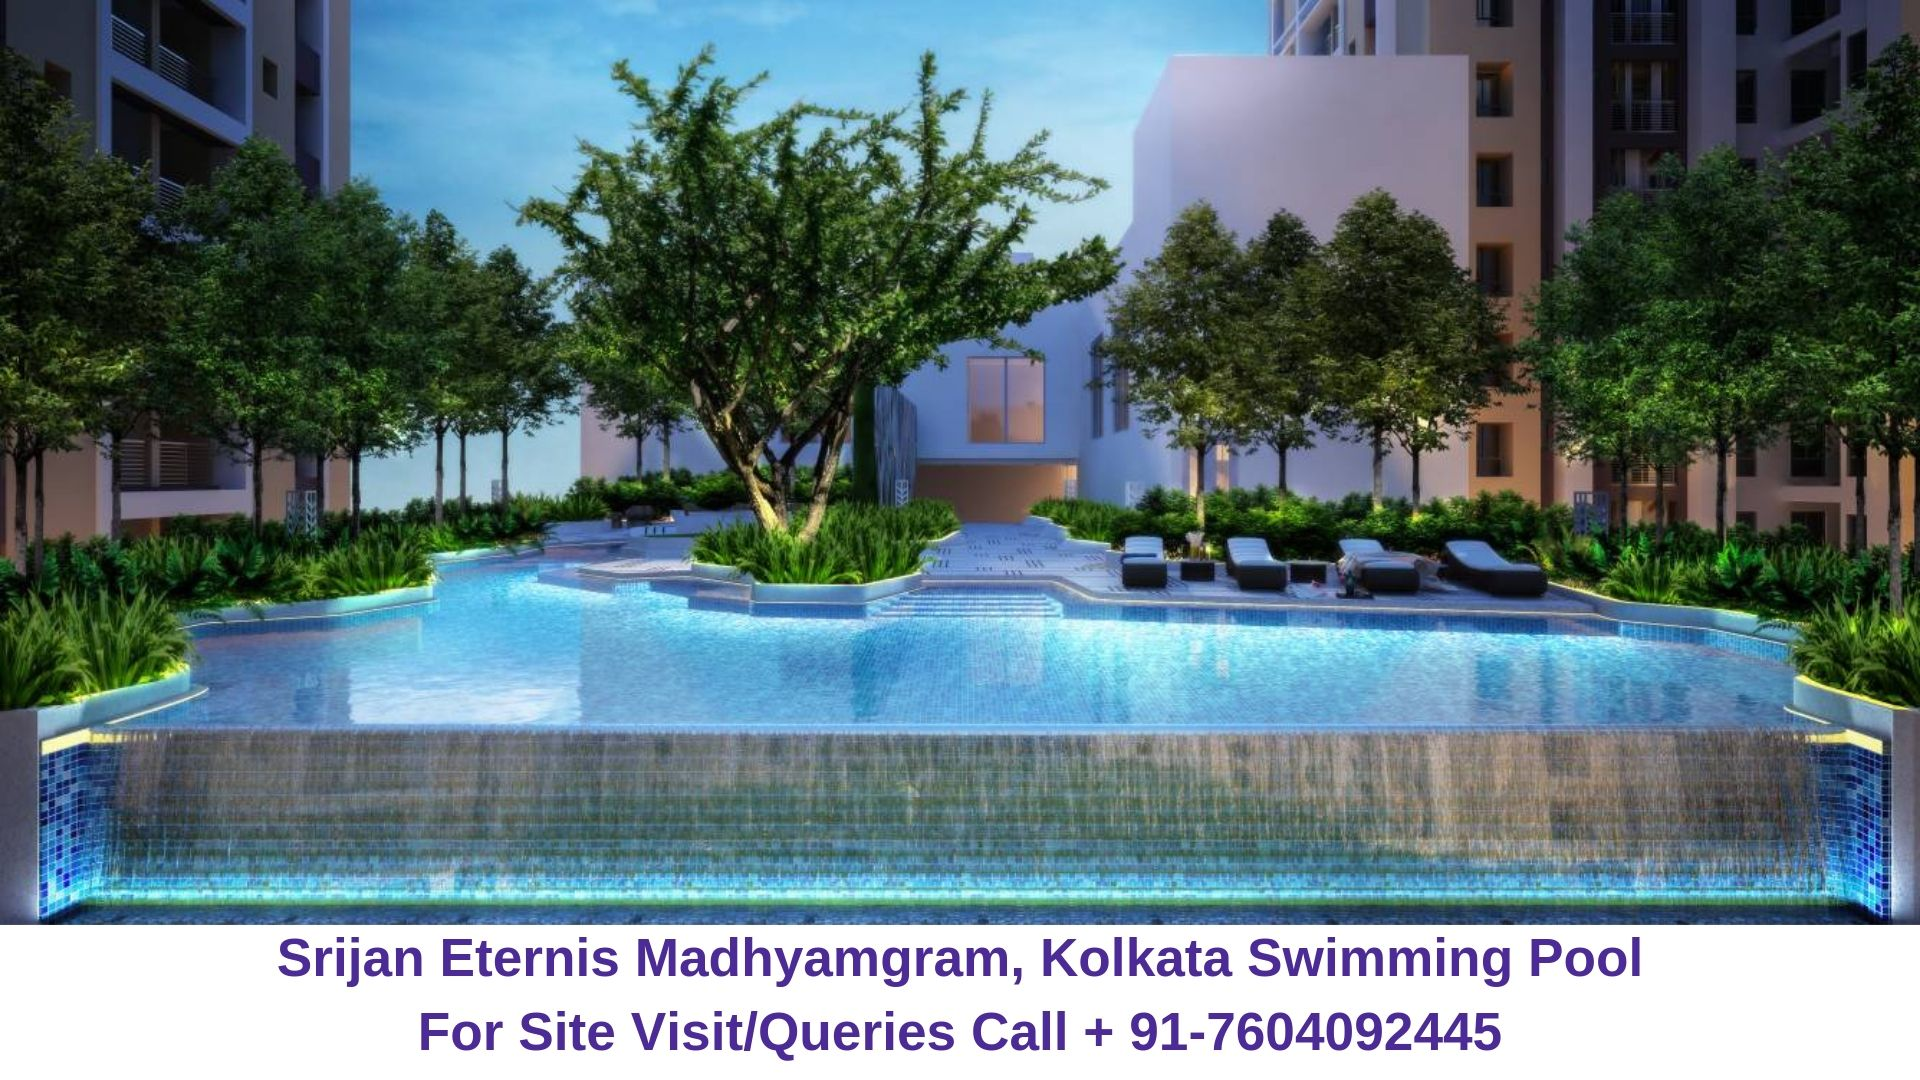 Srijan Eternis Madhyamgram, Kolkata Swimming Pool